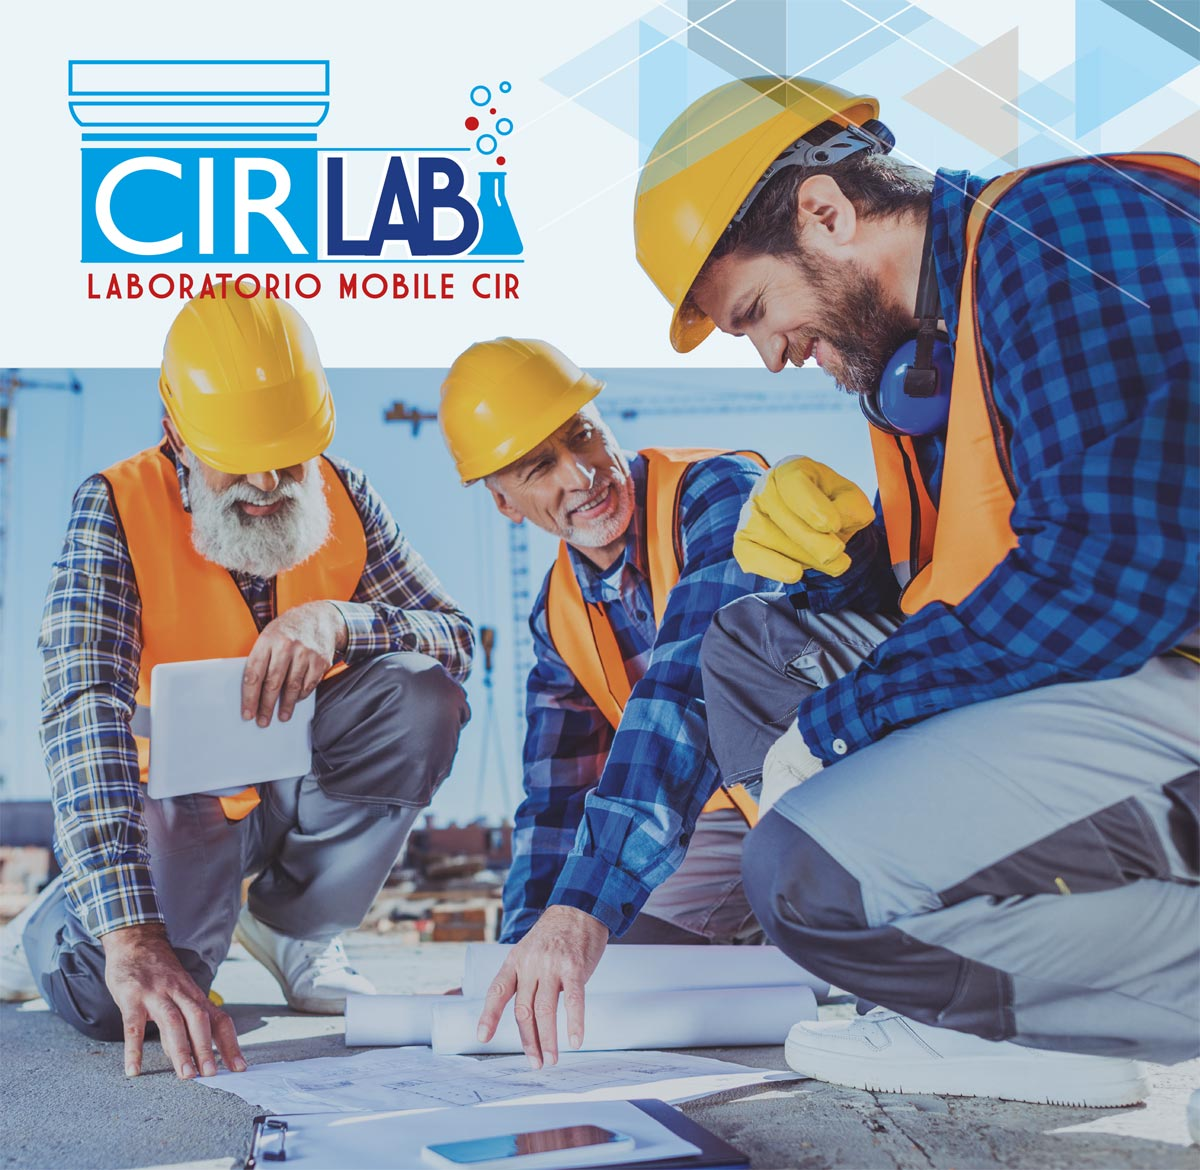 CIRLAB – Laboratorio Mobile CIR